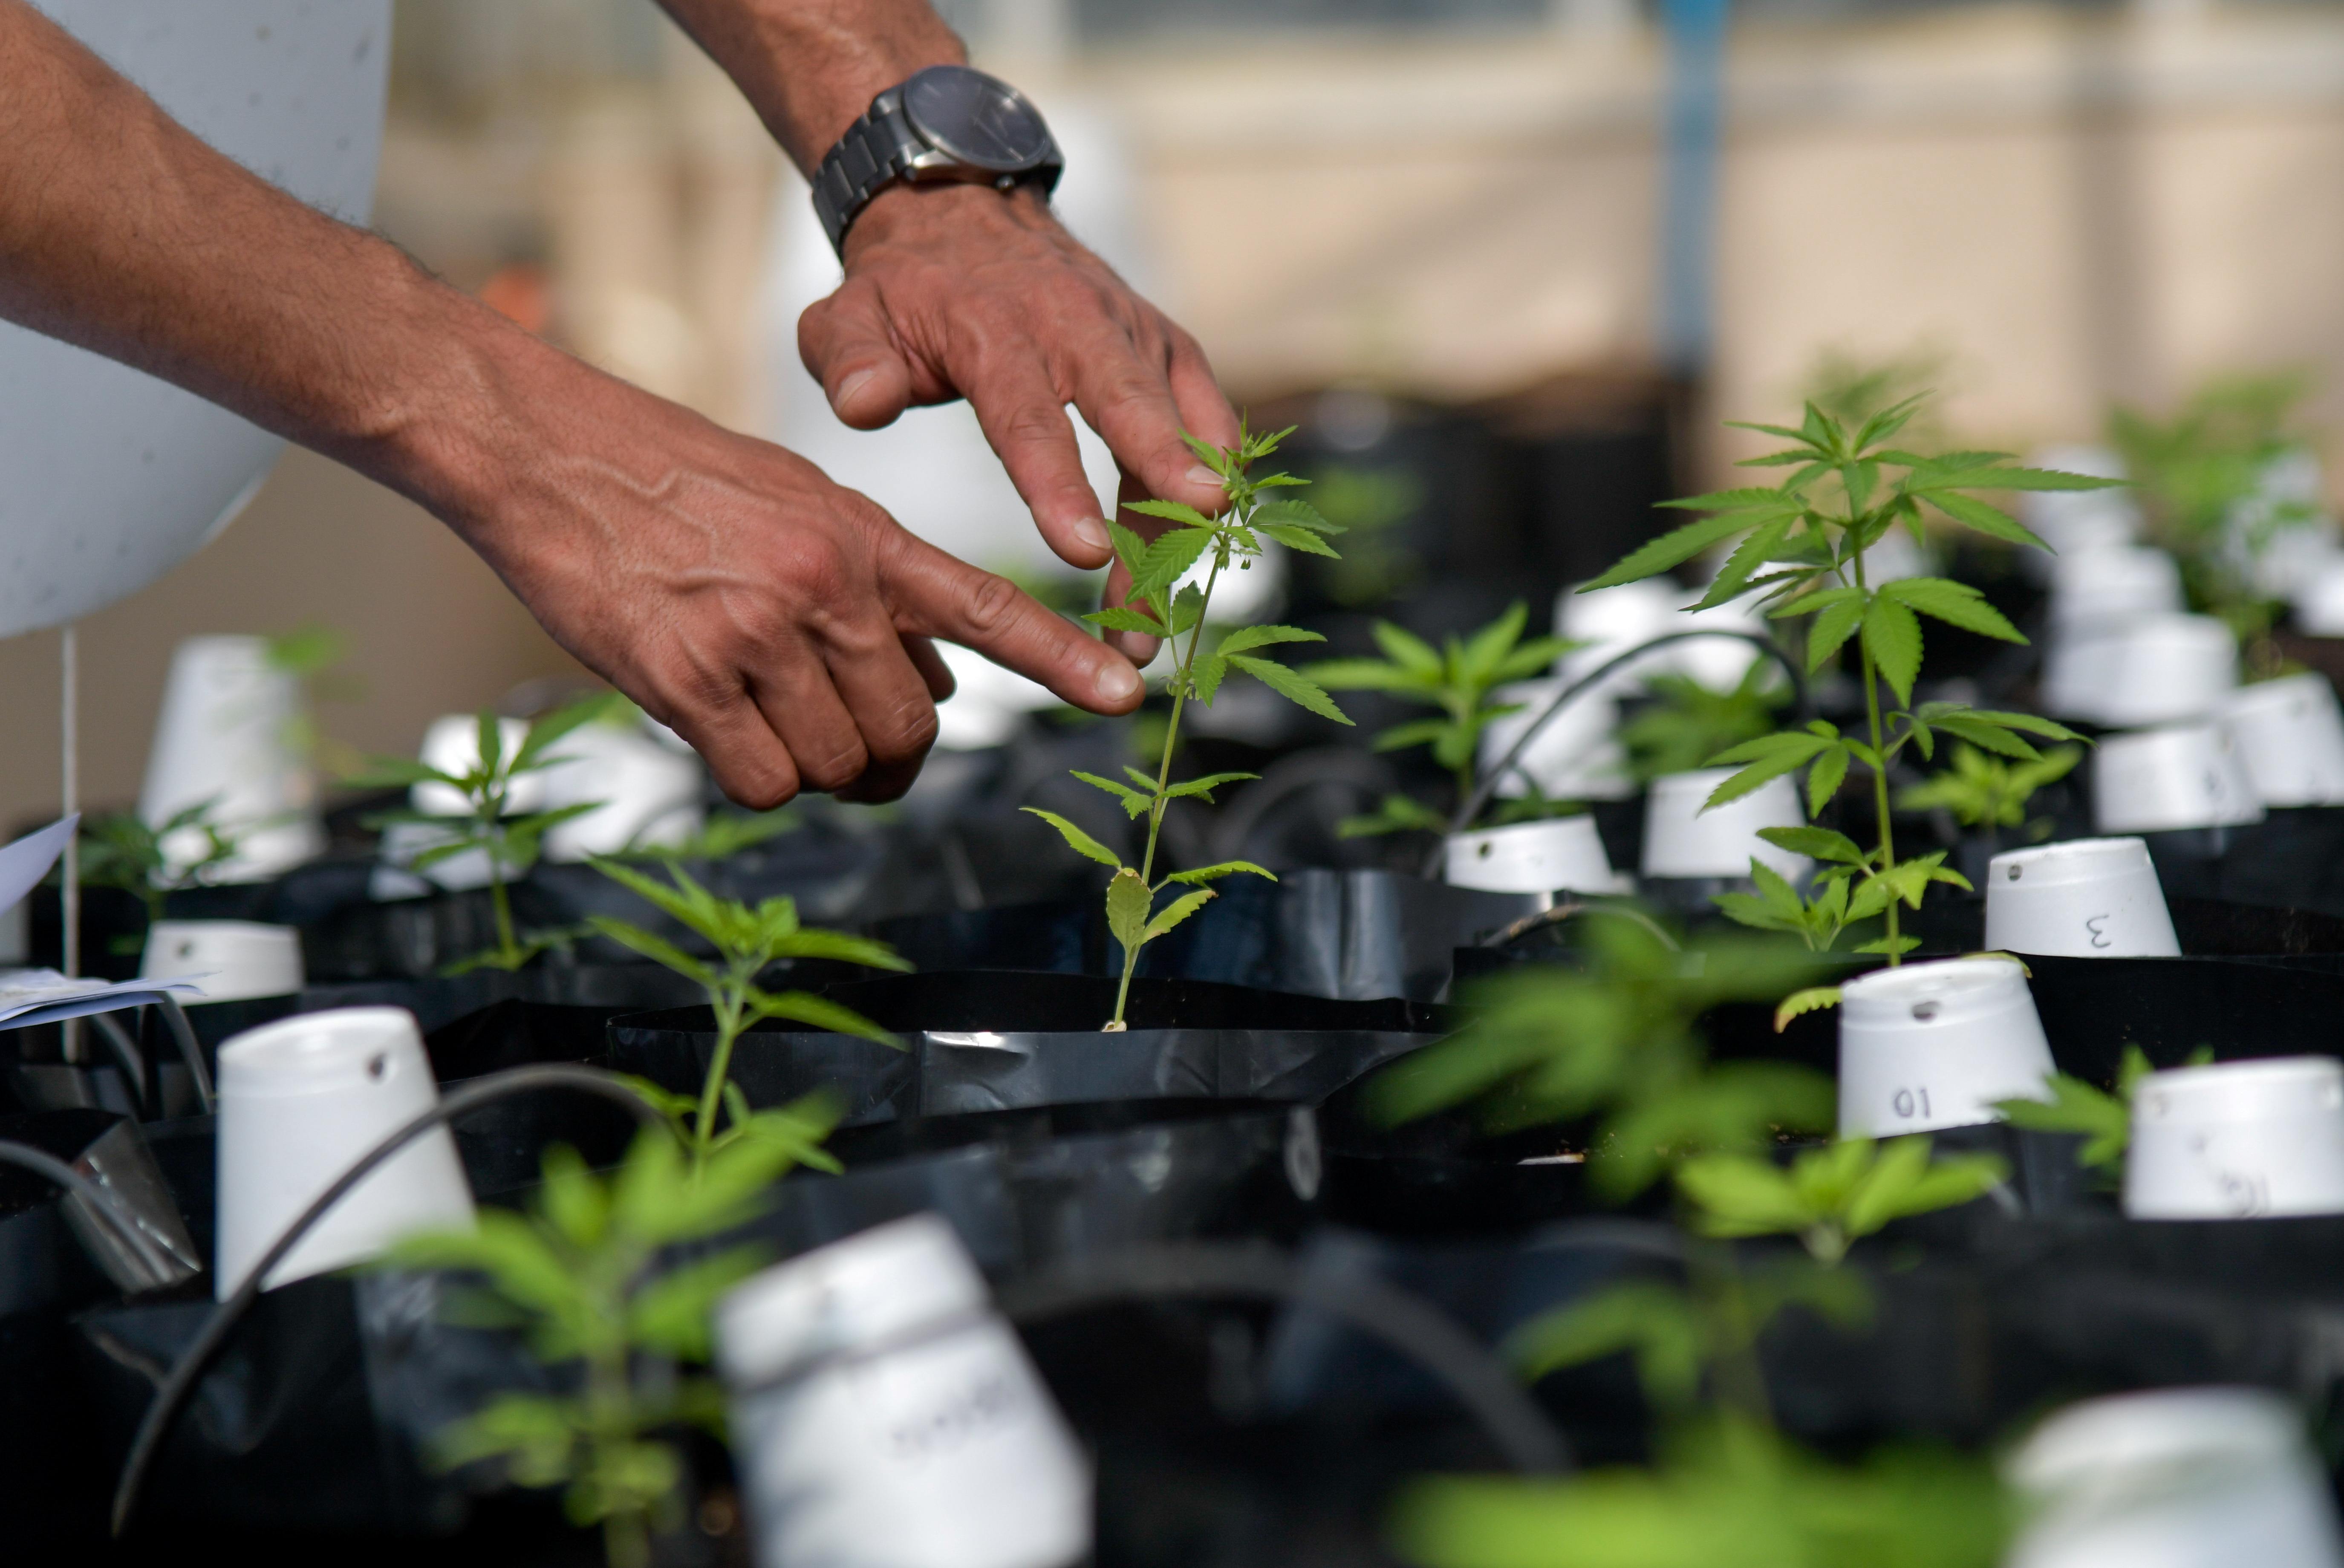 Agronomist Engineer Sergio Rocha, 36, Executive Director of the cannabis cultivation for research and cultivation project, works inside of a greenhouse at the Federal University of Vicosa, Minas Gerais state, Brazil, August 18, 2021. Picture taken August 18, 2021. REUTERS/Washington Alves